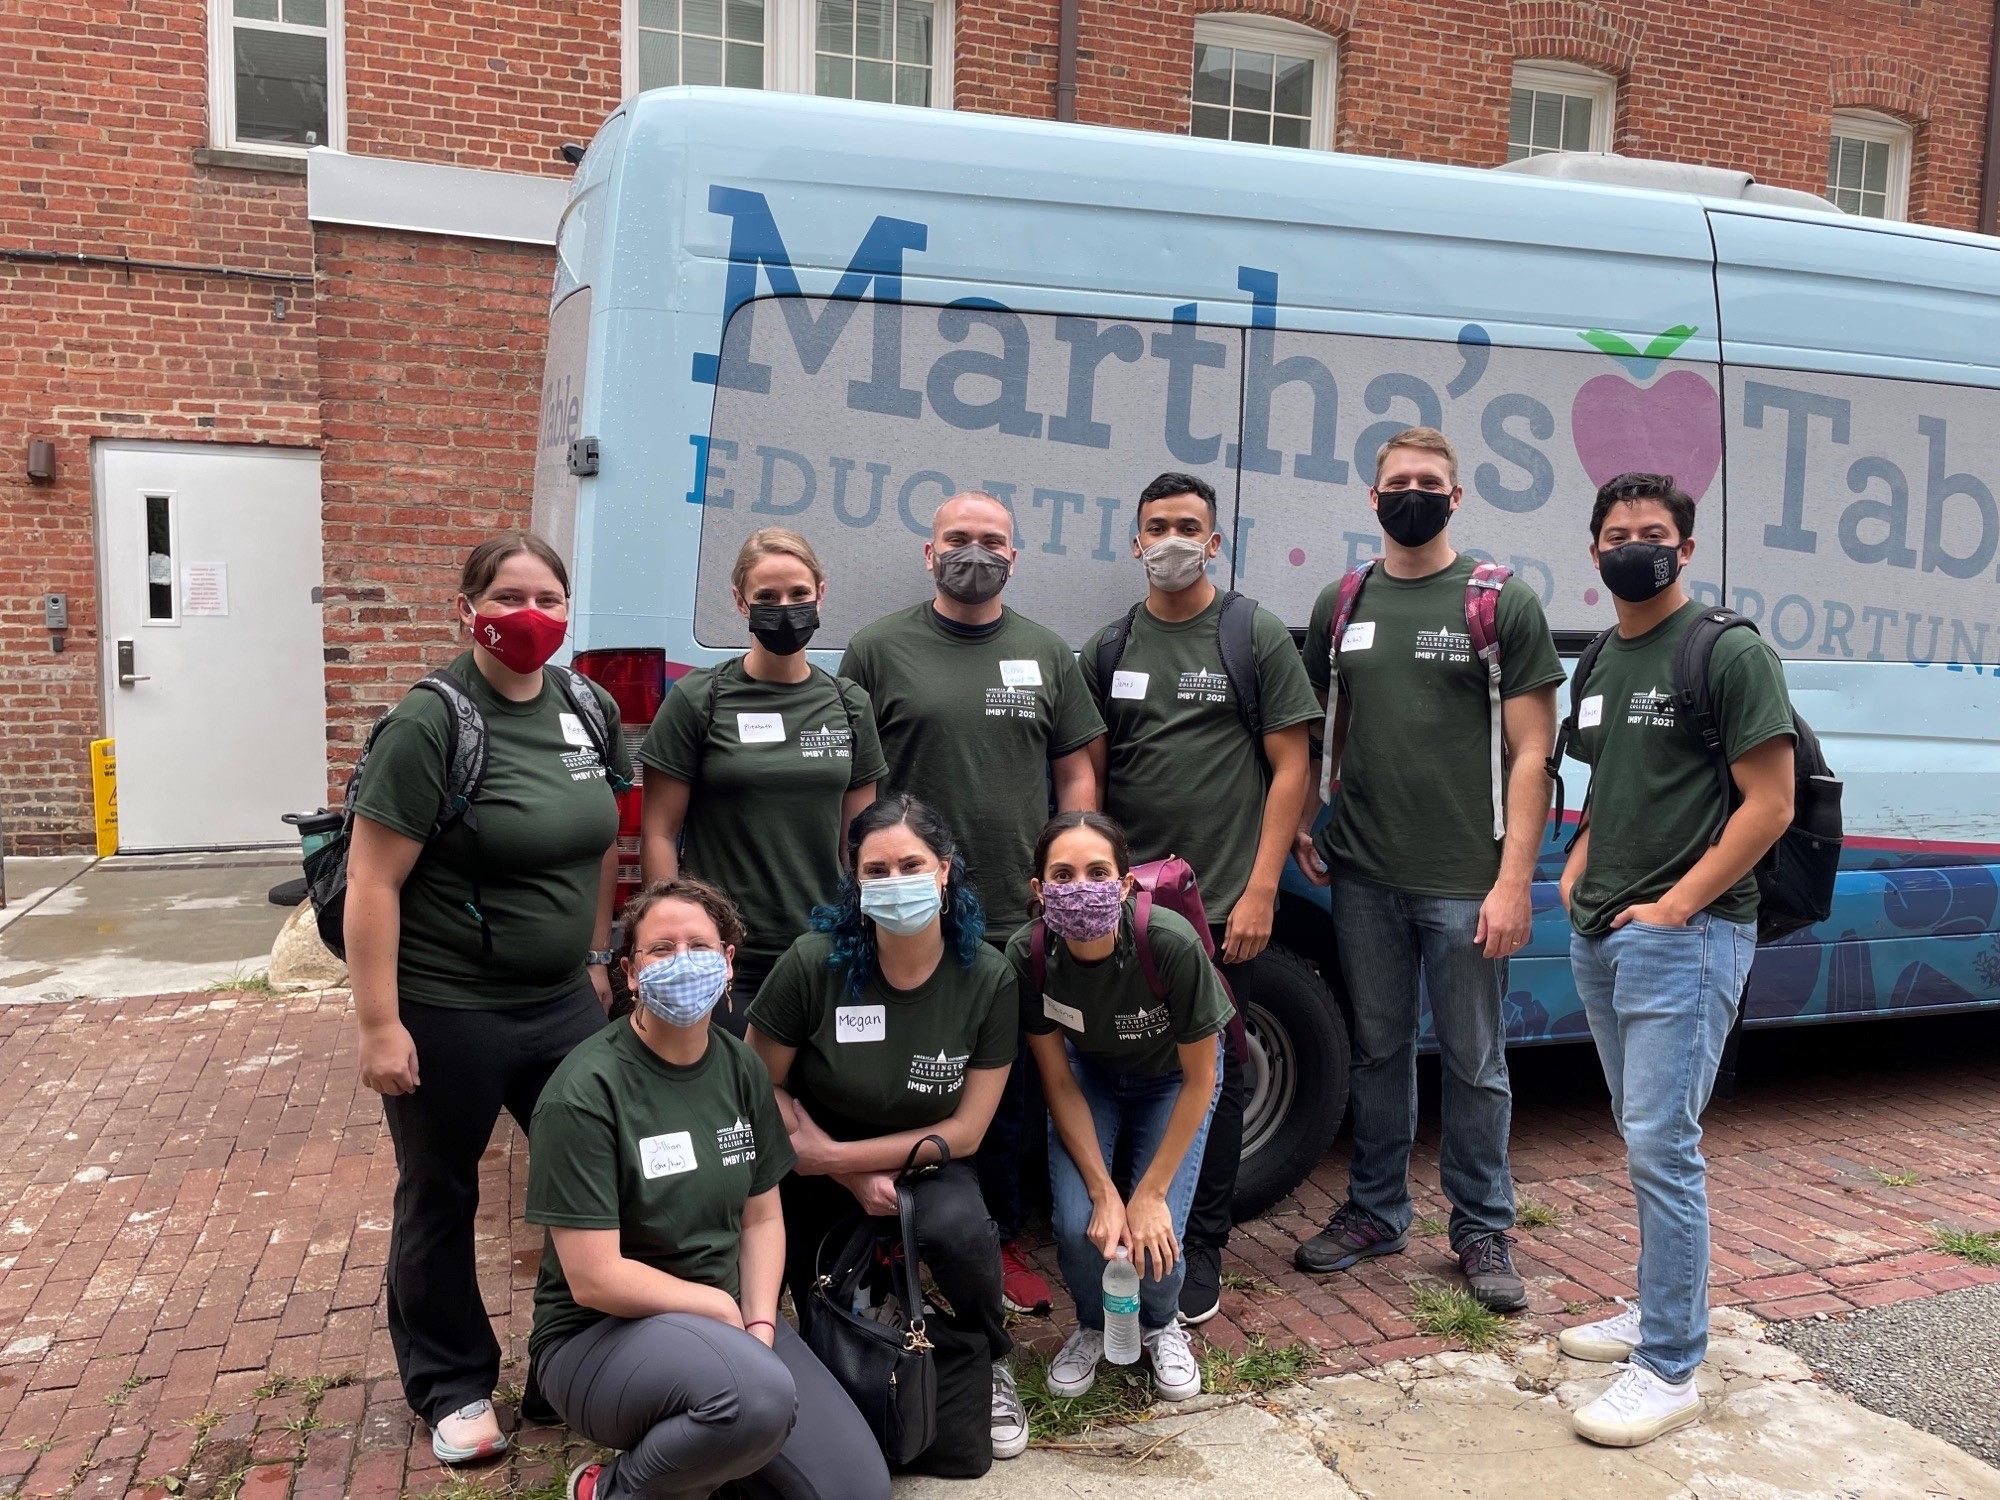 Students volunteer at Martha's Table, stand by van with logo.